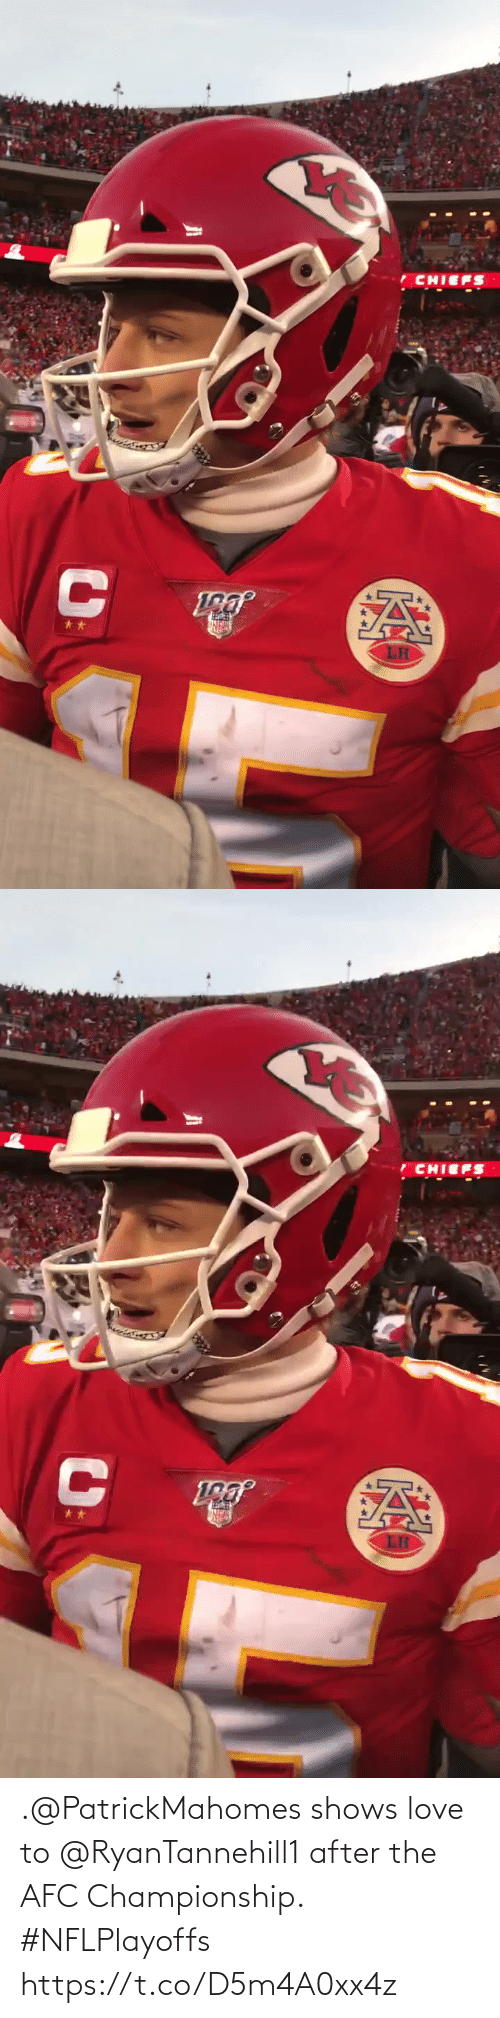 Love To: .@PatrickMahomes shows love to @RyanTannehill1 after the AFC Championship. #NFLPlayoffs https://t.co/D5m4A0xx4z